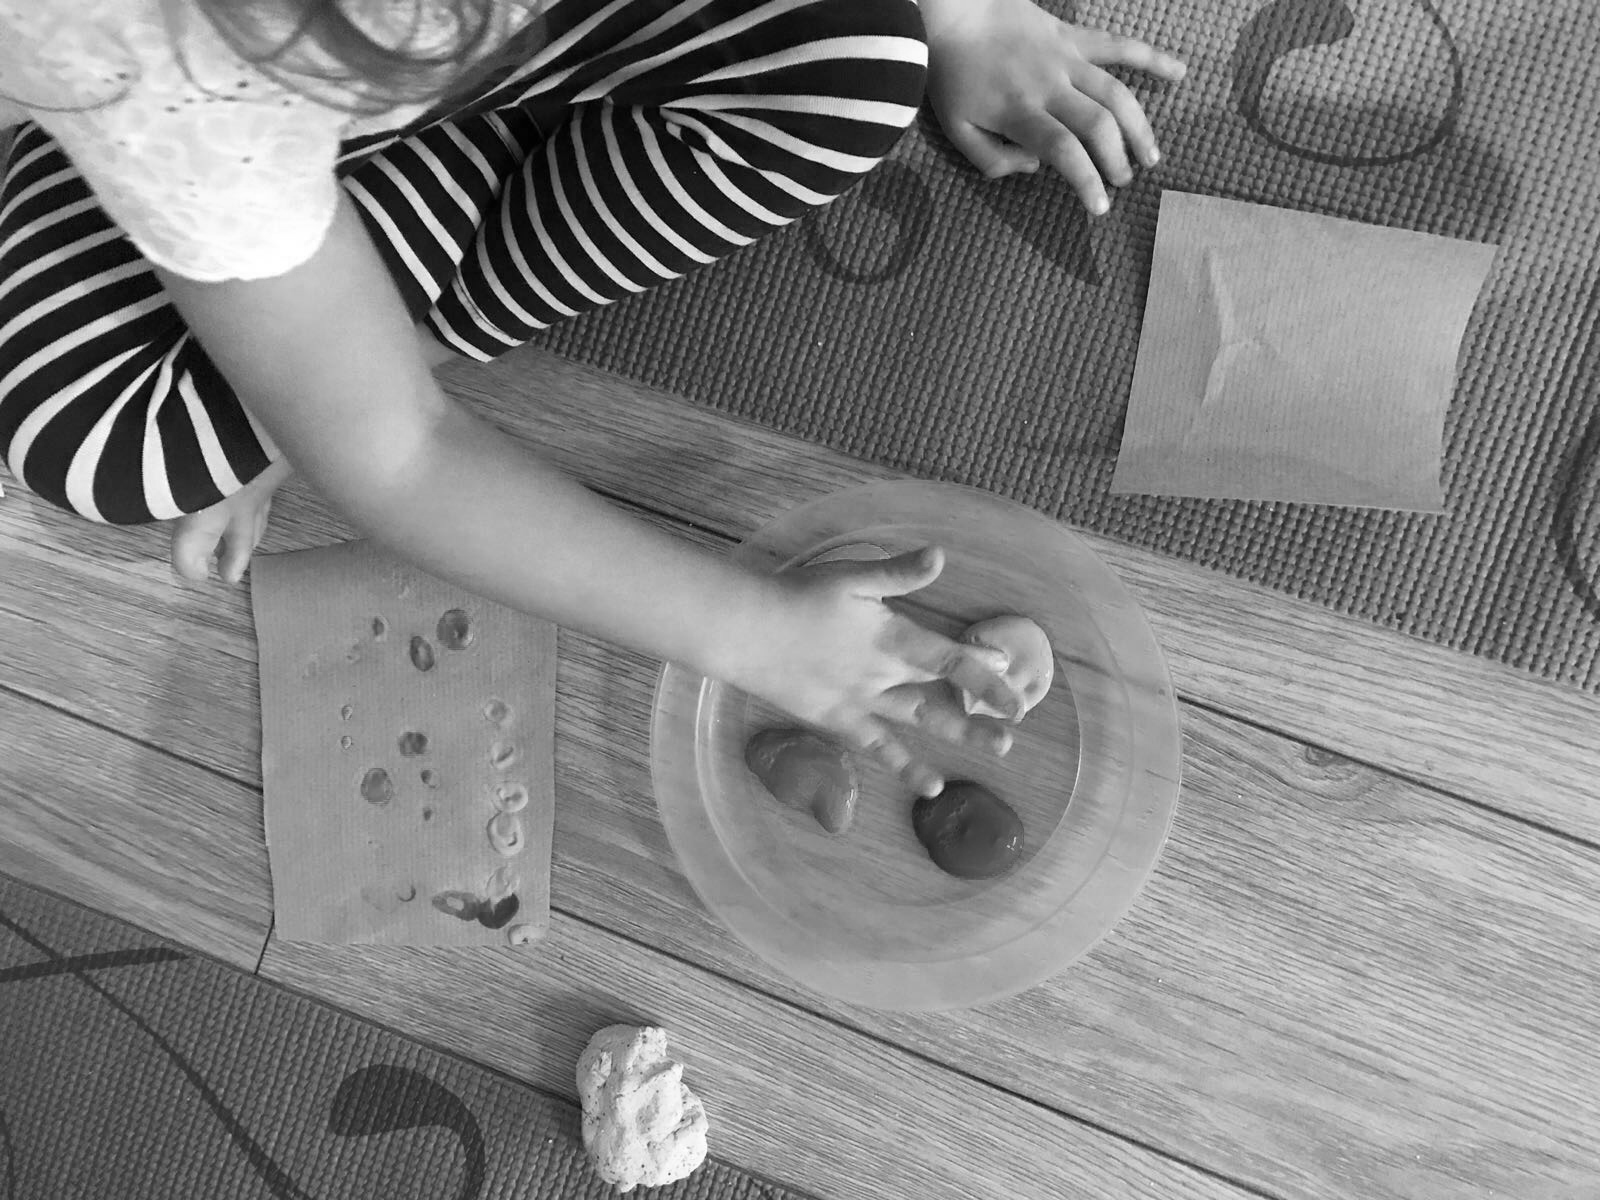 My daughter and I absolutely love Julia's class. I'm so happy to have a group to take her to that develops her emotional and physical well-being as well as providing a space for us to connect free from other distractions. So many other toddler/pre-school groups are stimulation overload! Thank you - - Pamela, SE19